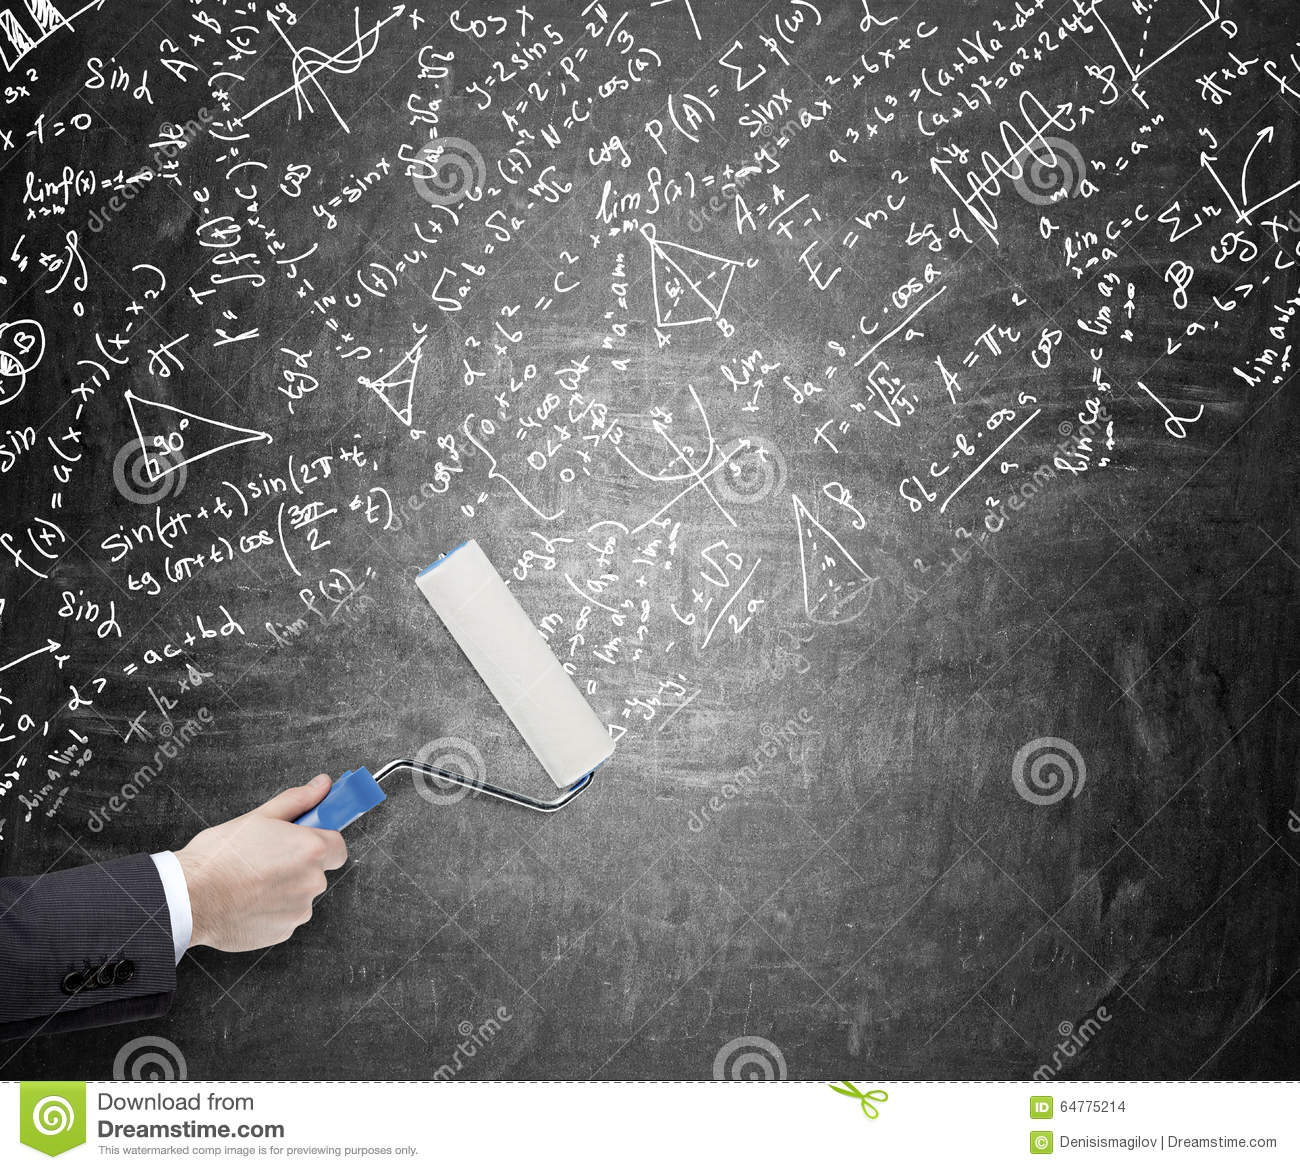 Calculations On The Blackboard Stock Photo Image Of Lamp Formulas Notes And Diagrams Hand Painting A Blackboardl With Roller Covering It Mathematic Signs Graphs Concept Giving New Ideas